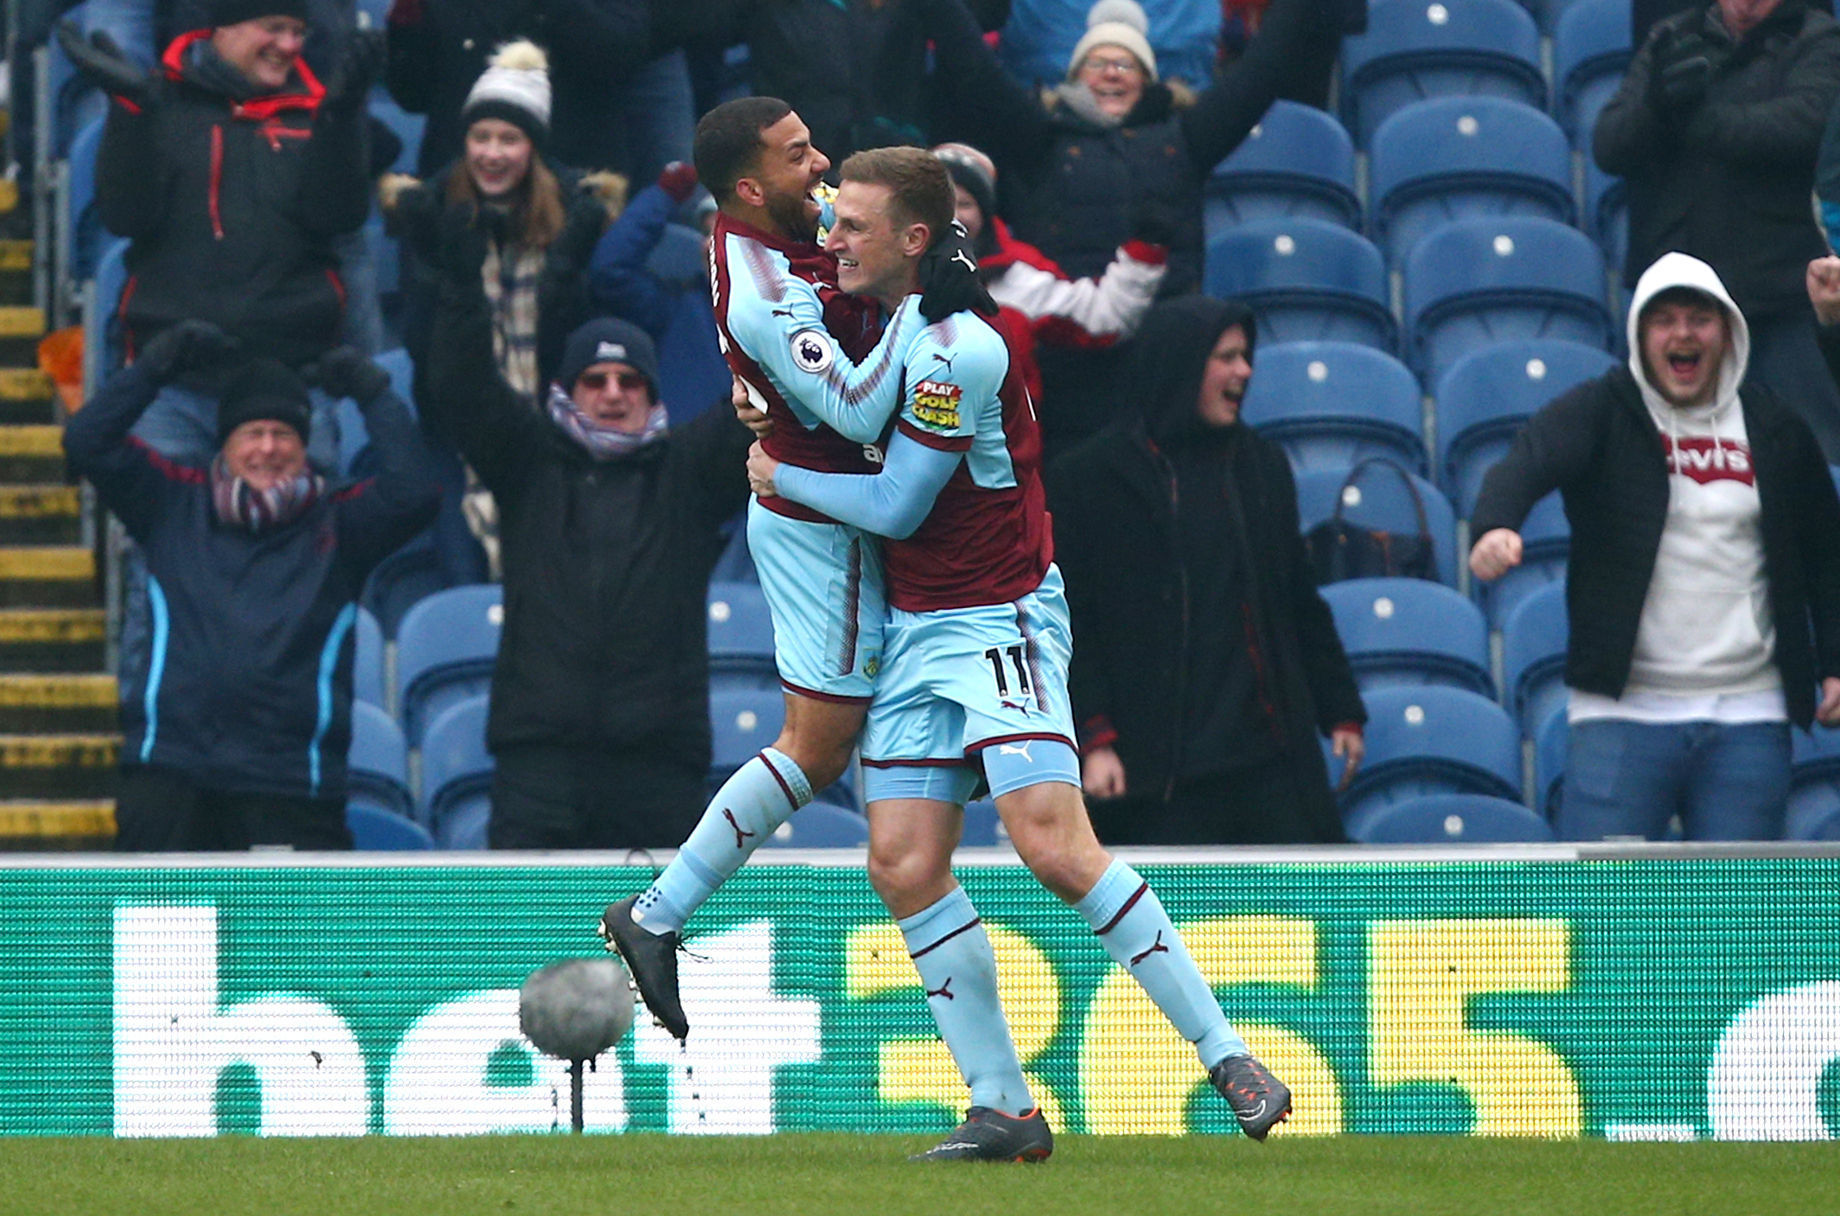 Chris Wood was back amongst the goals for Burnley last weekend, but he won't face New Zealand teammate Winston Reid this weekend